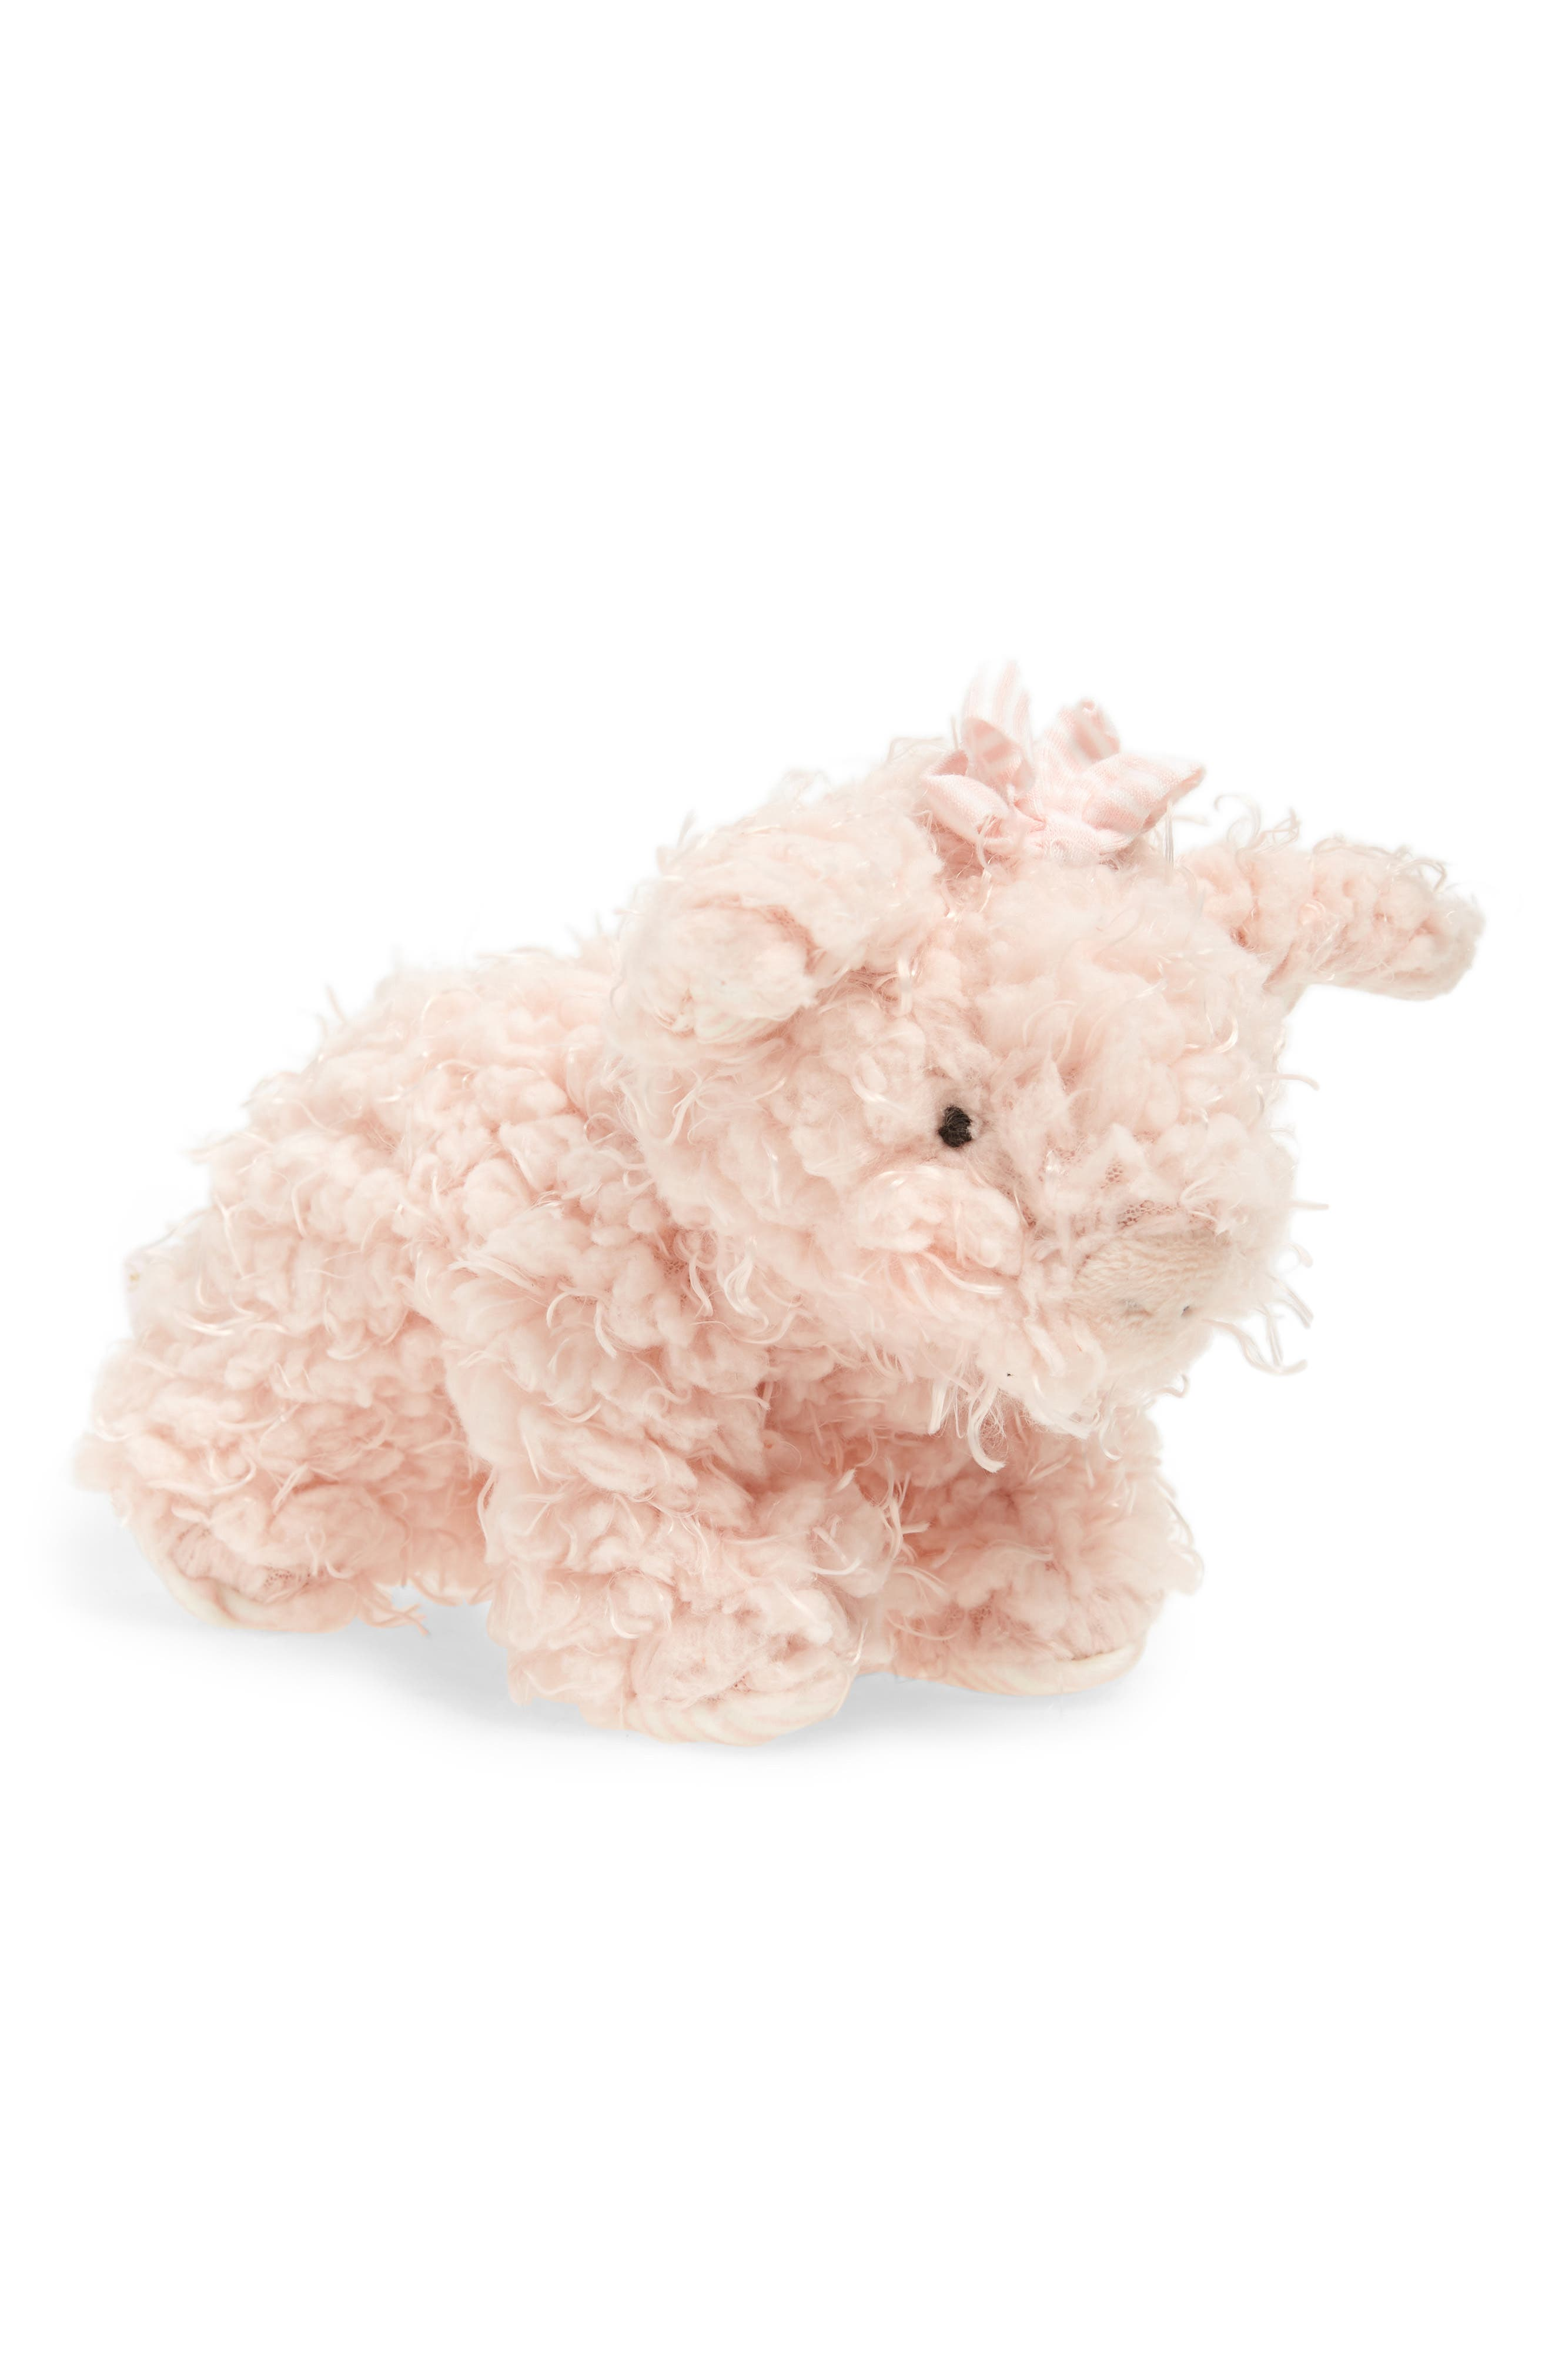 Main Image - Bunnies by the Bay Patty Pig Stuffed Animal